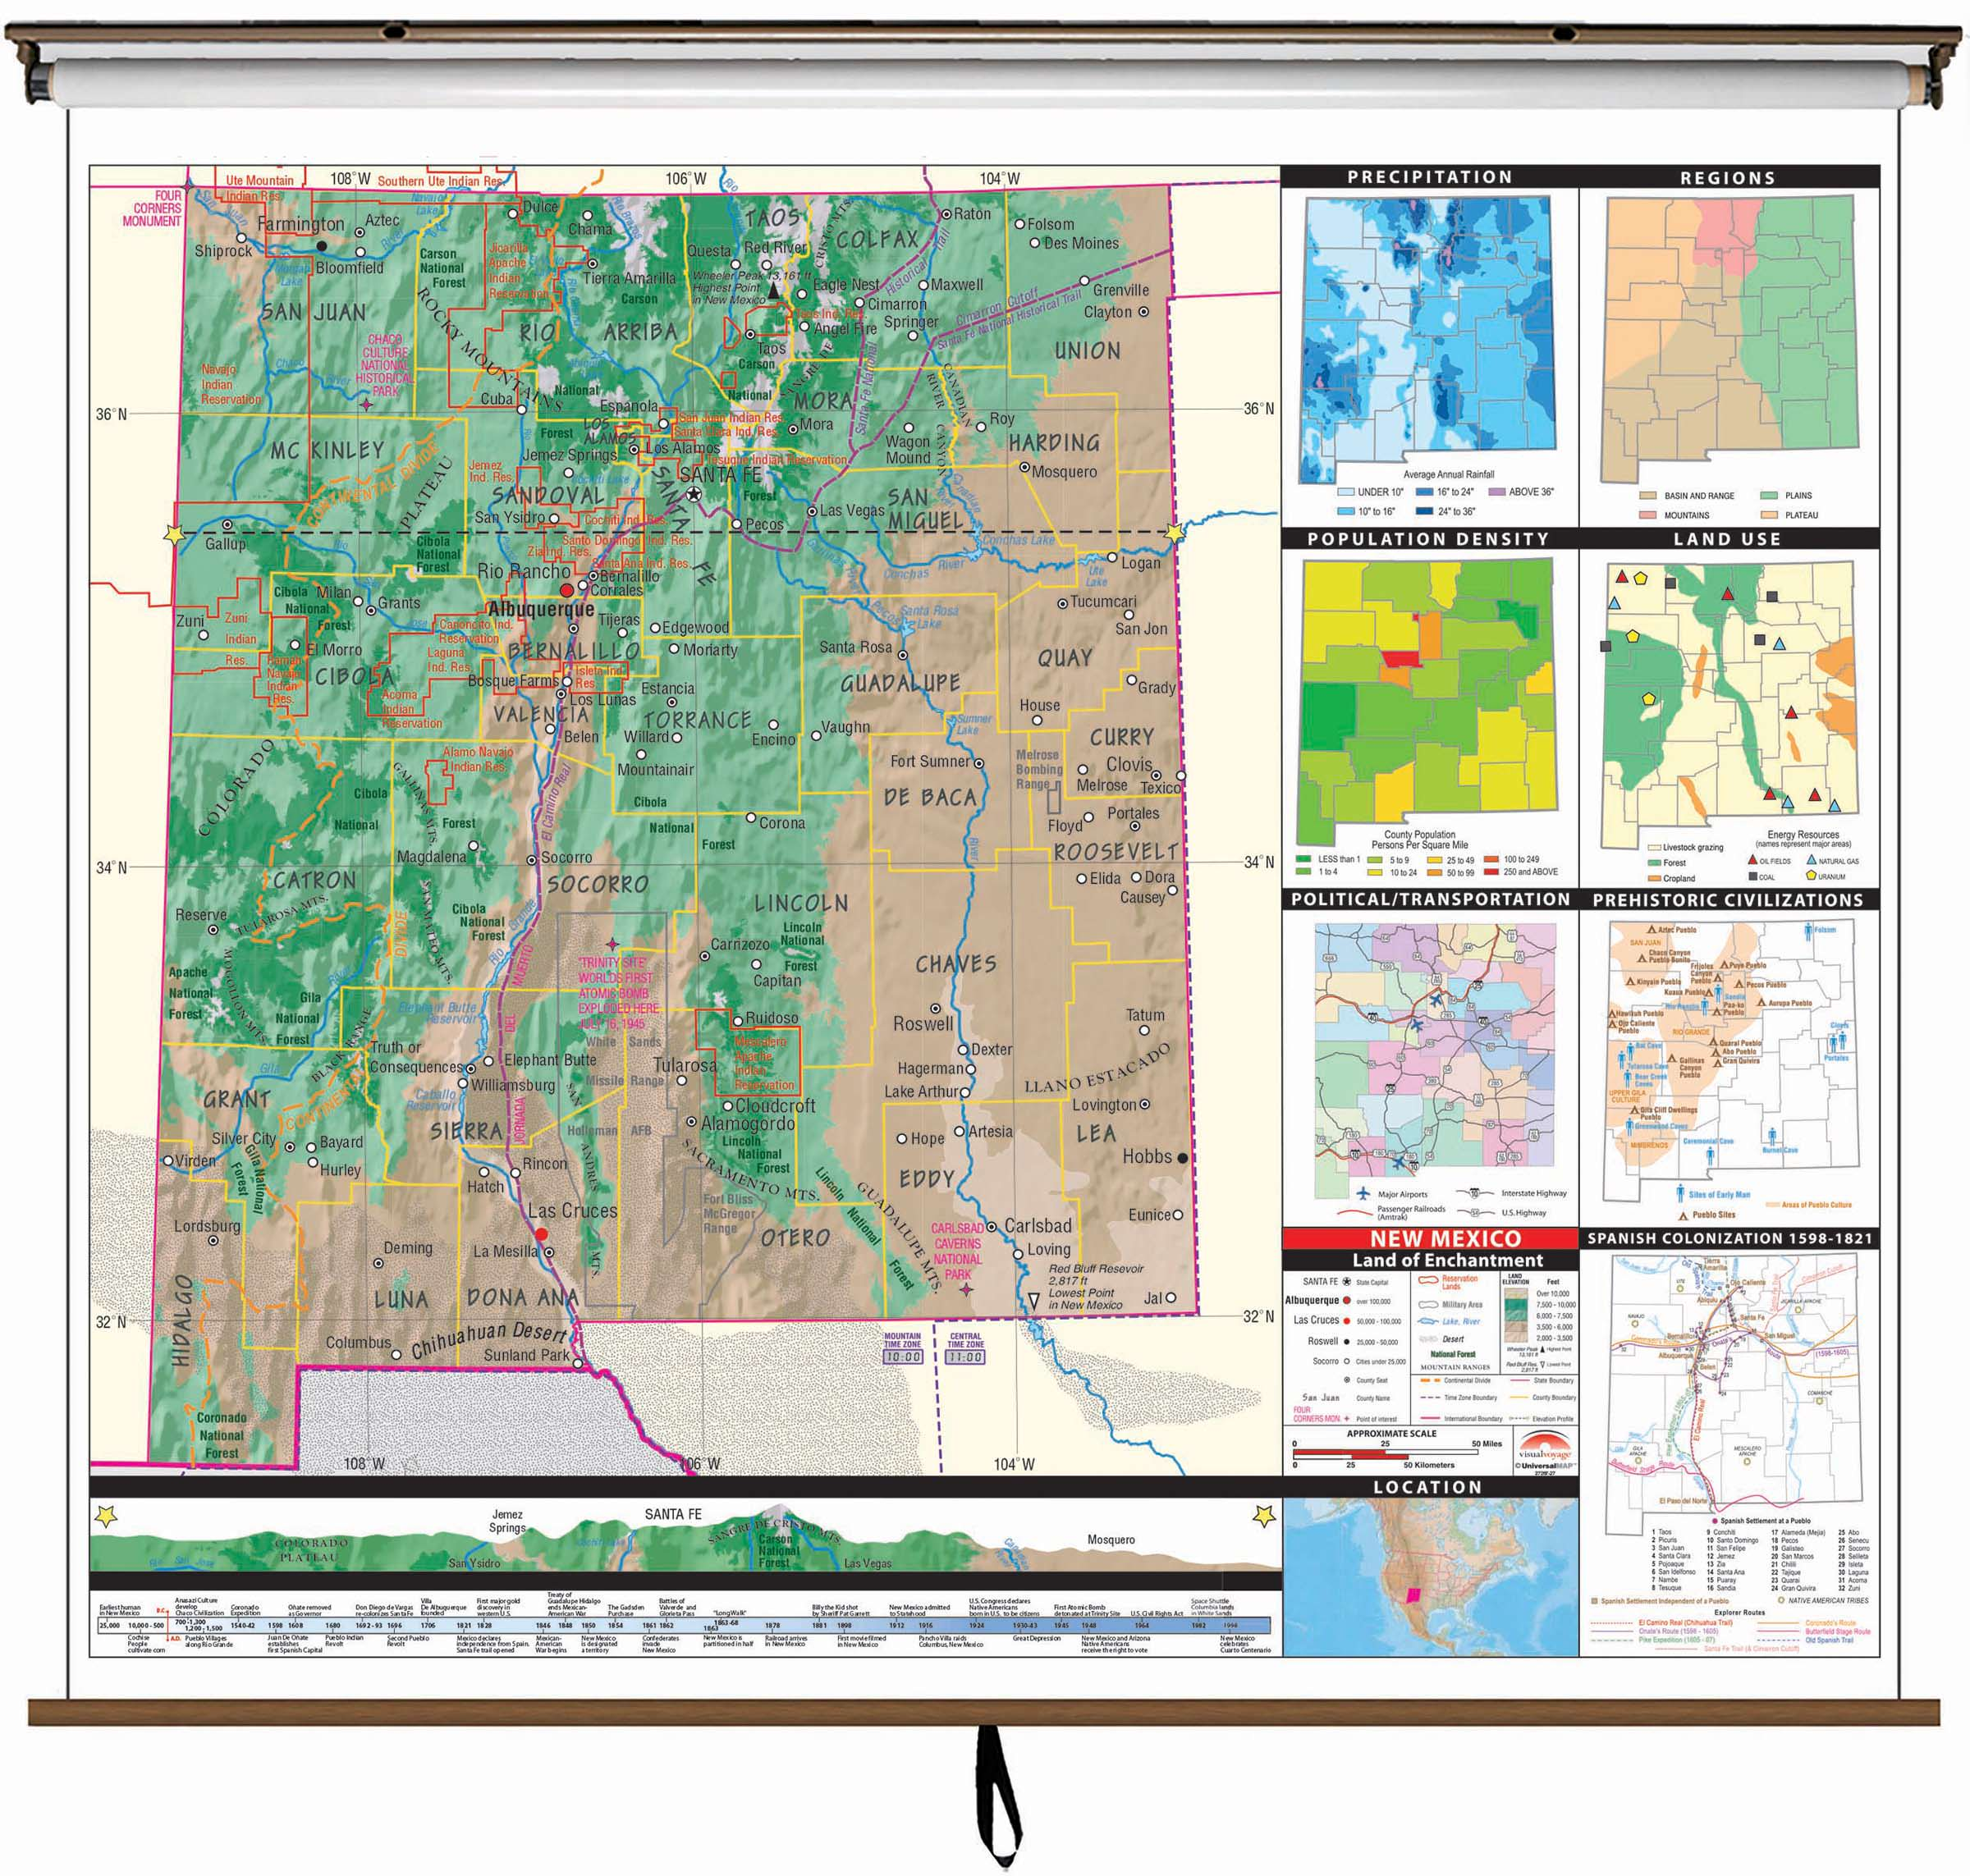 New Mexico State Intermediate Thematic Wall Map on Roller w ...